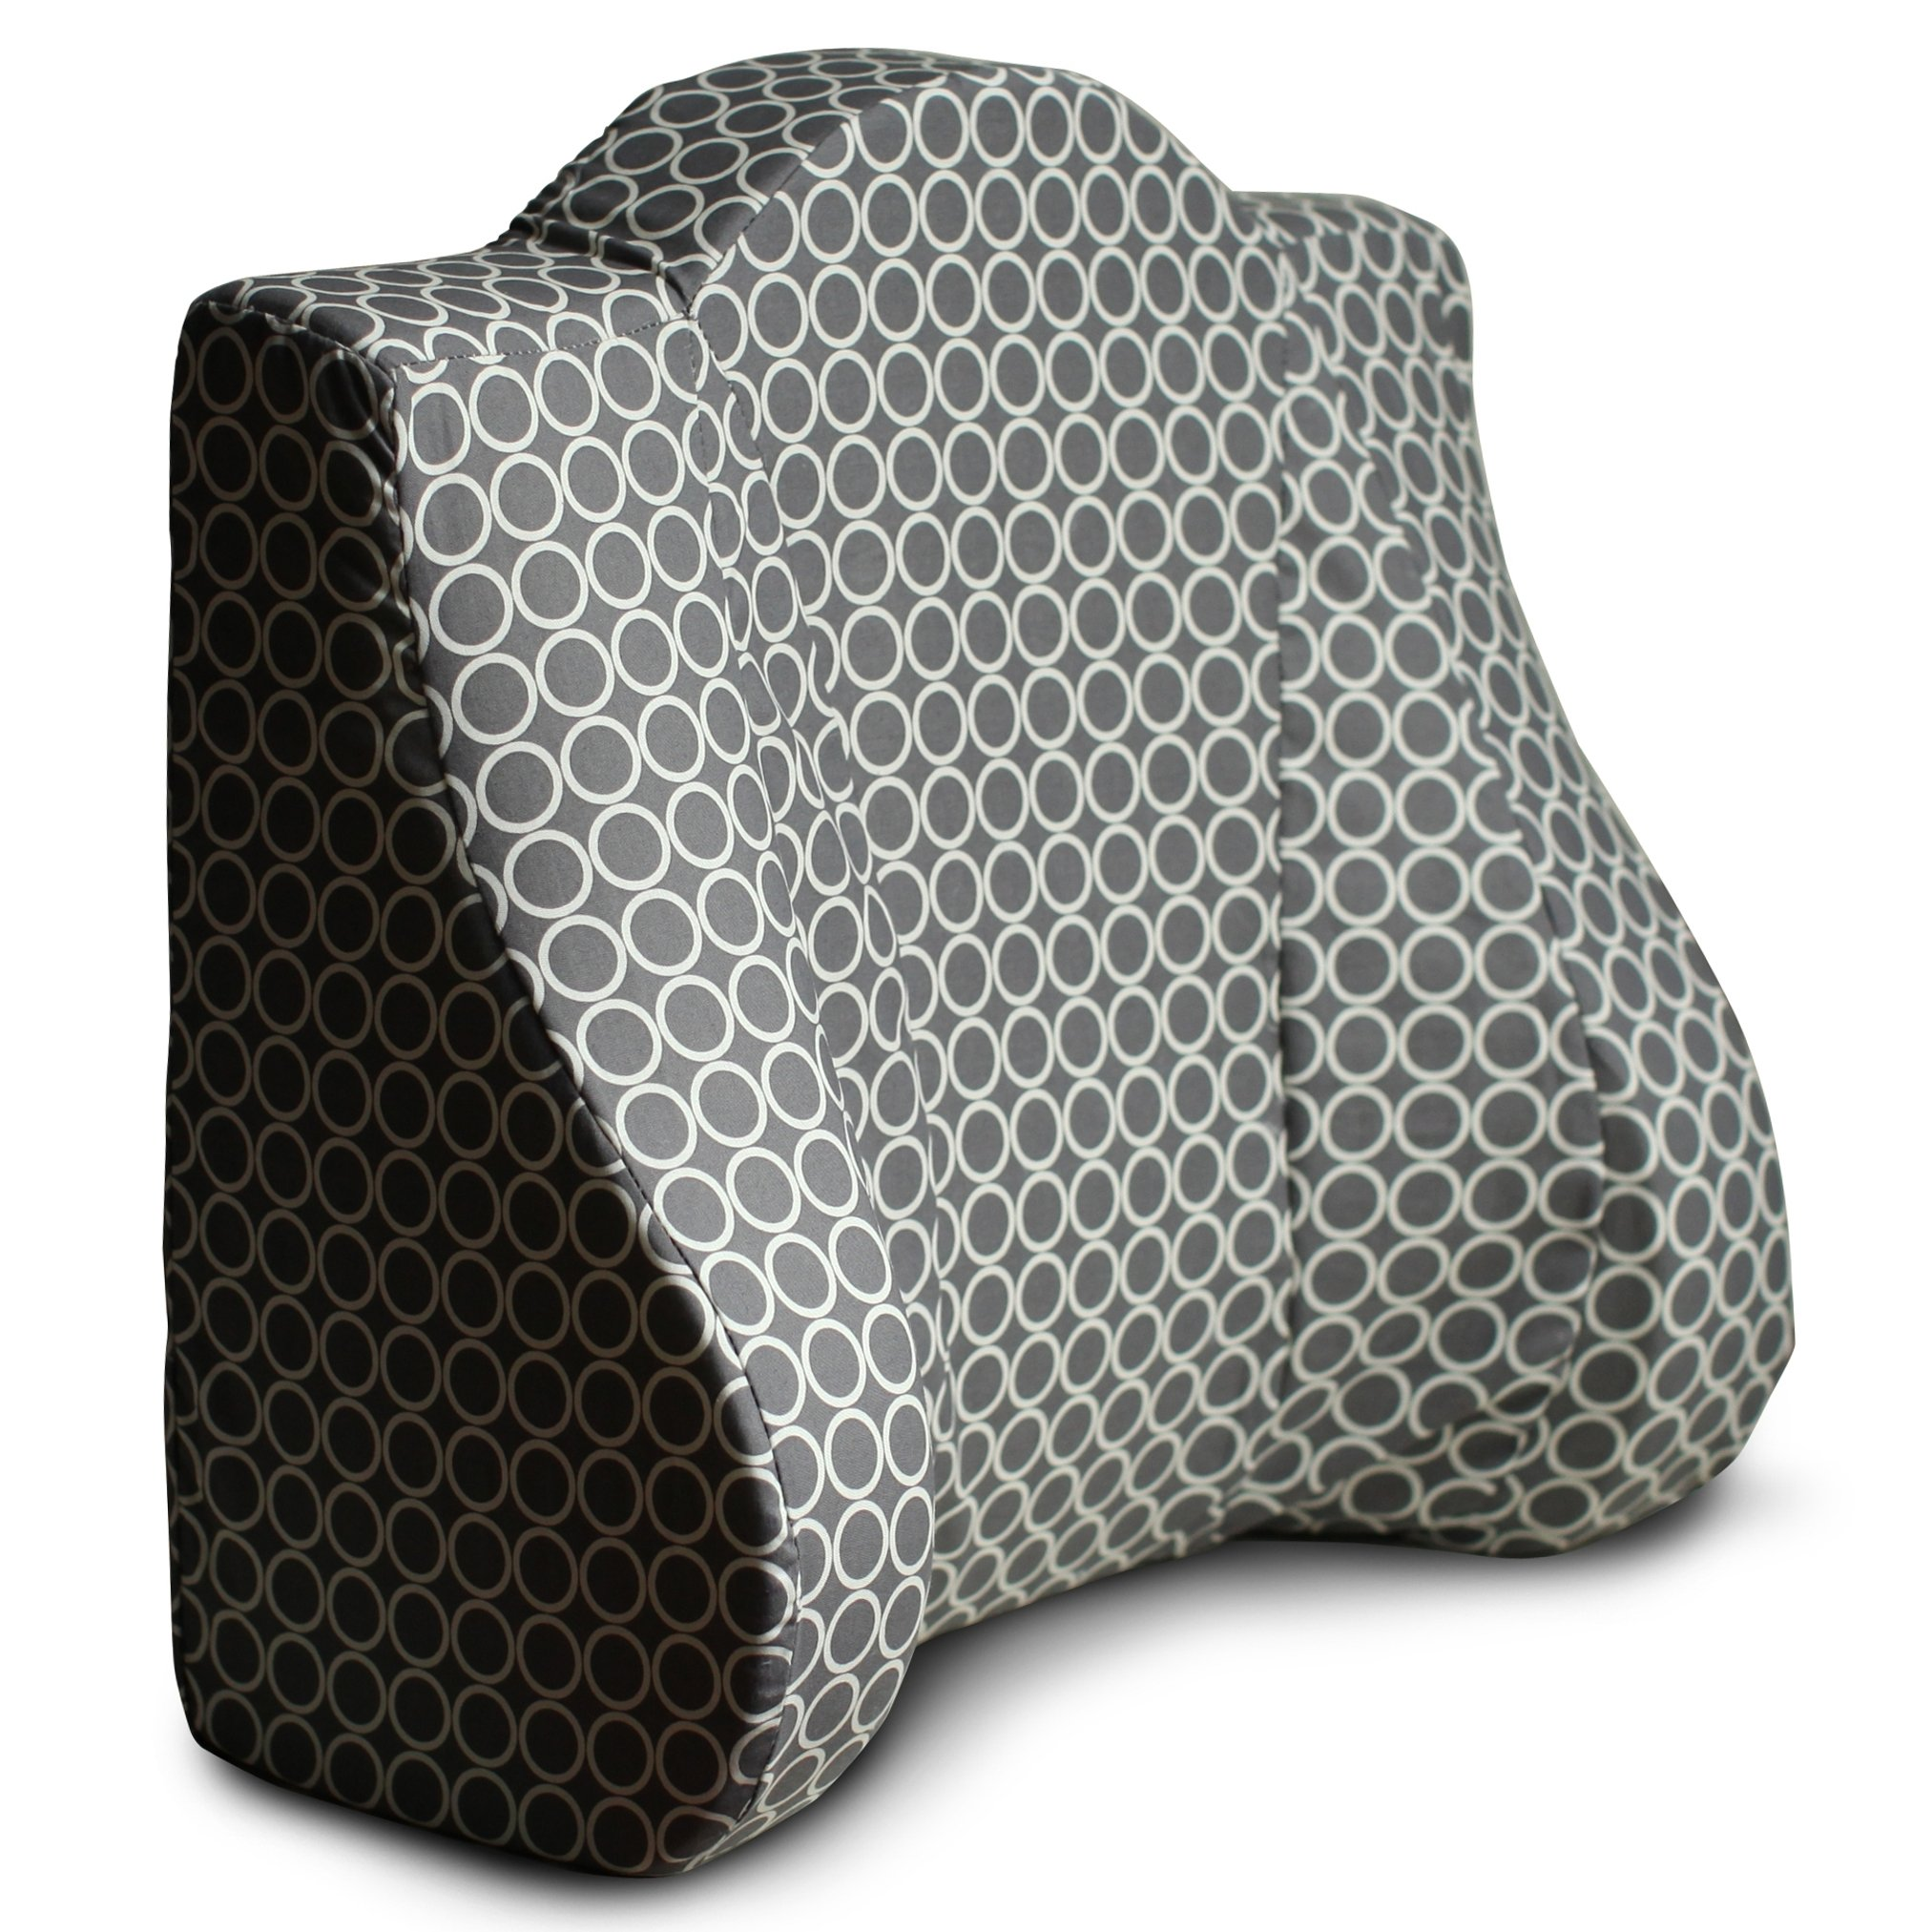 Back Buddy Original Support Pillow for Pregnancy, Postpartum, and Feeding - Gianna (Grey Circle)